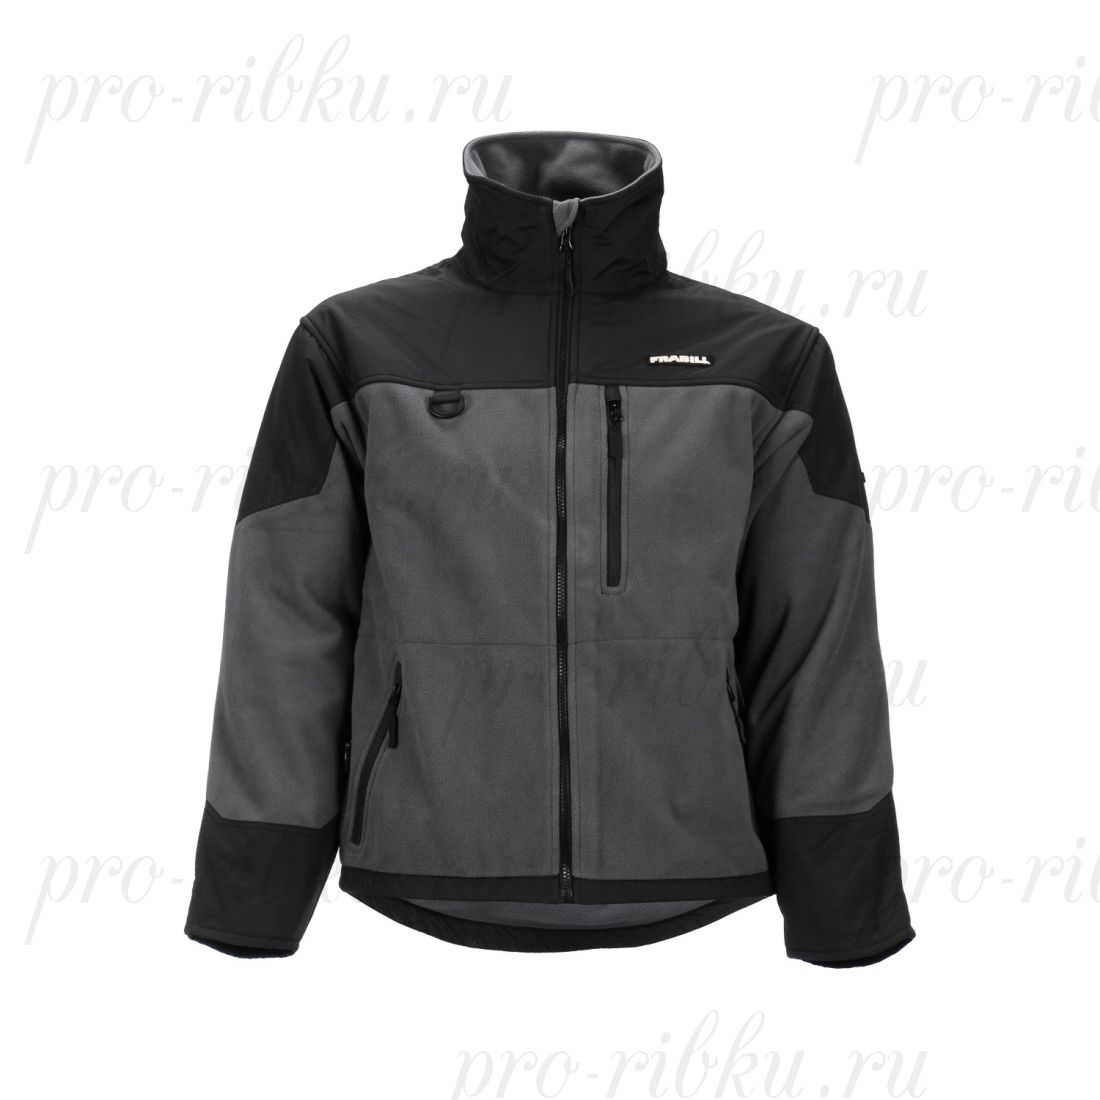 Куртка флисовая Frabill FXE WINDPROOF FLEECE Jacket размер L